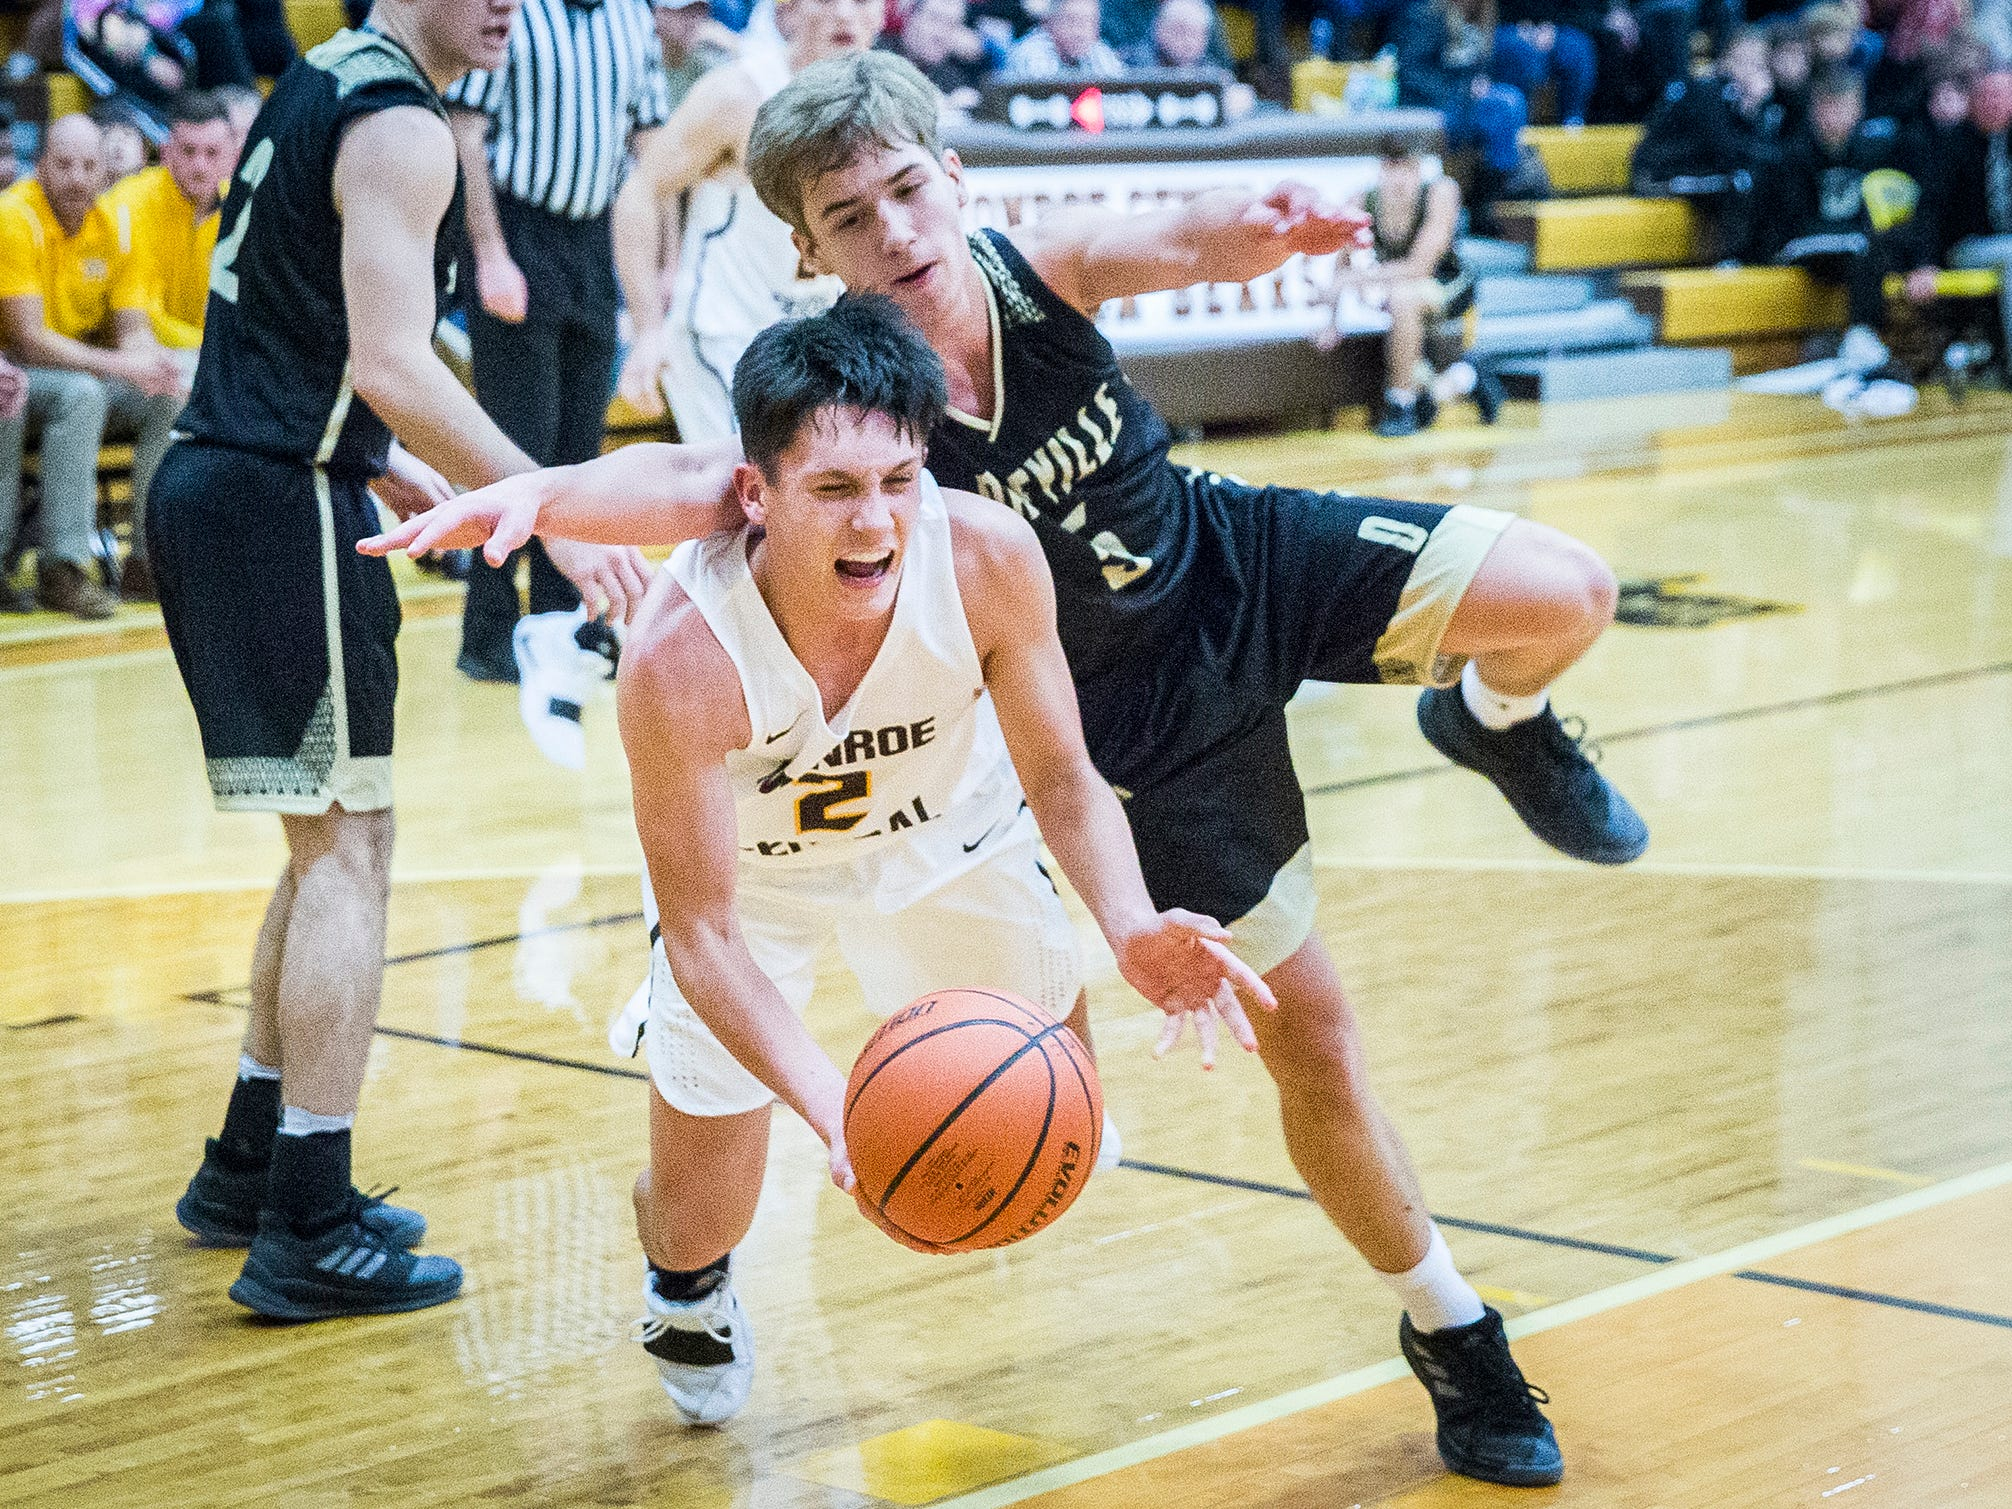 Monroe Central's Jackson Ullom is fouled by Daleville's Connor Fleming during their game at Monroe Central High School Friday, Nov. 30, 2018.